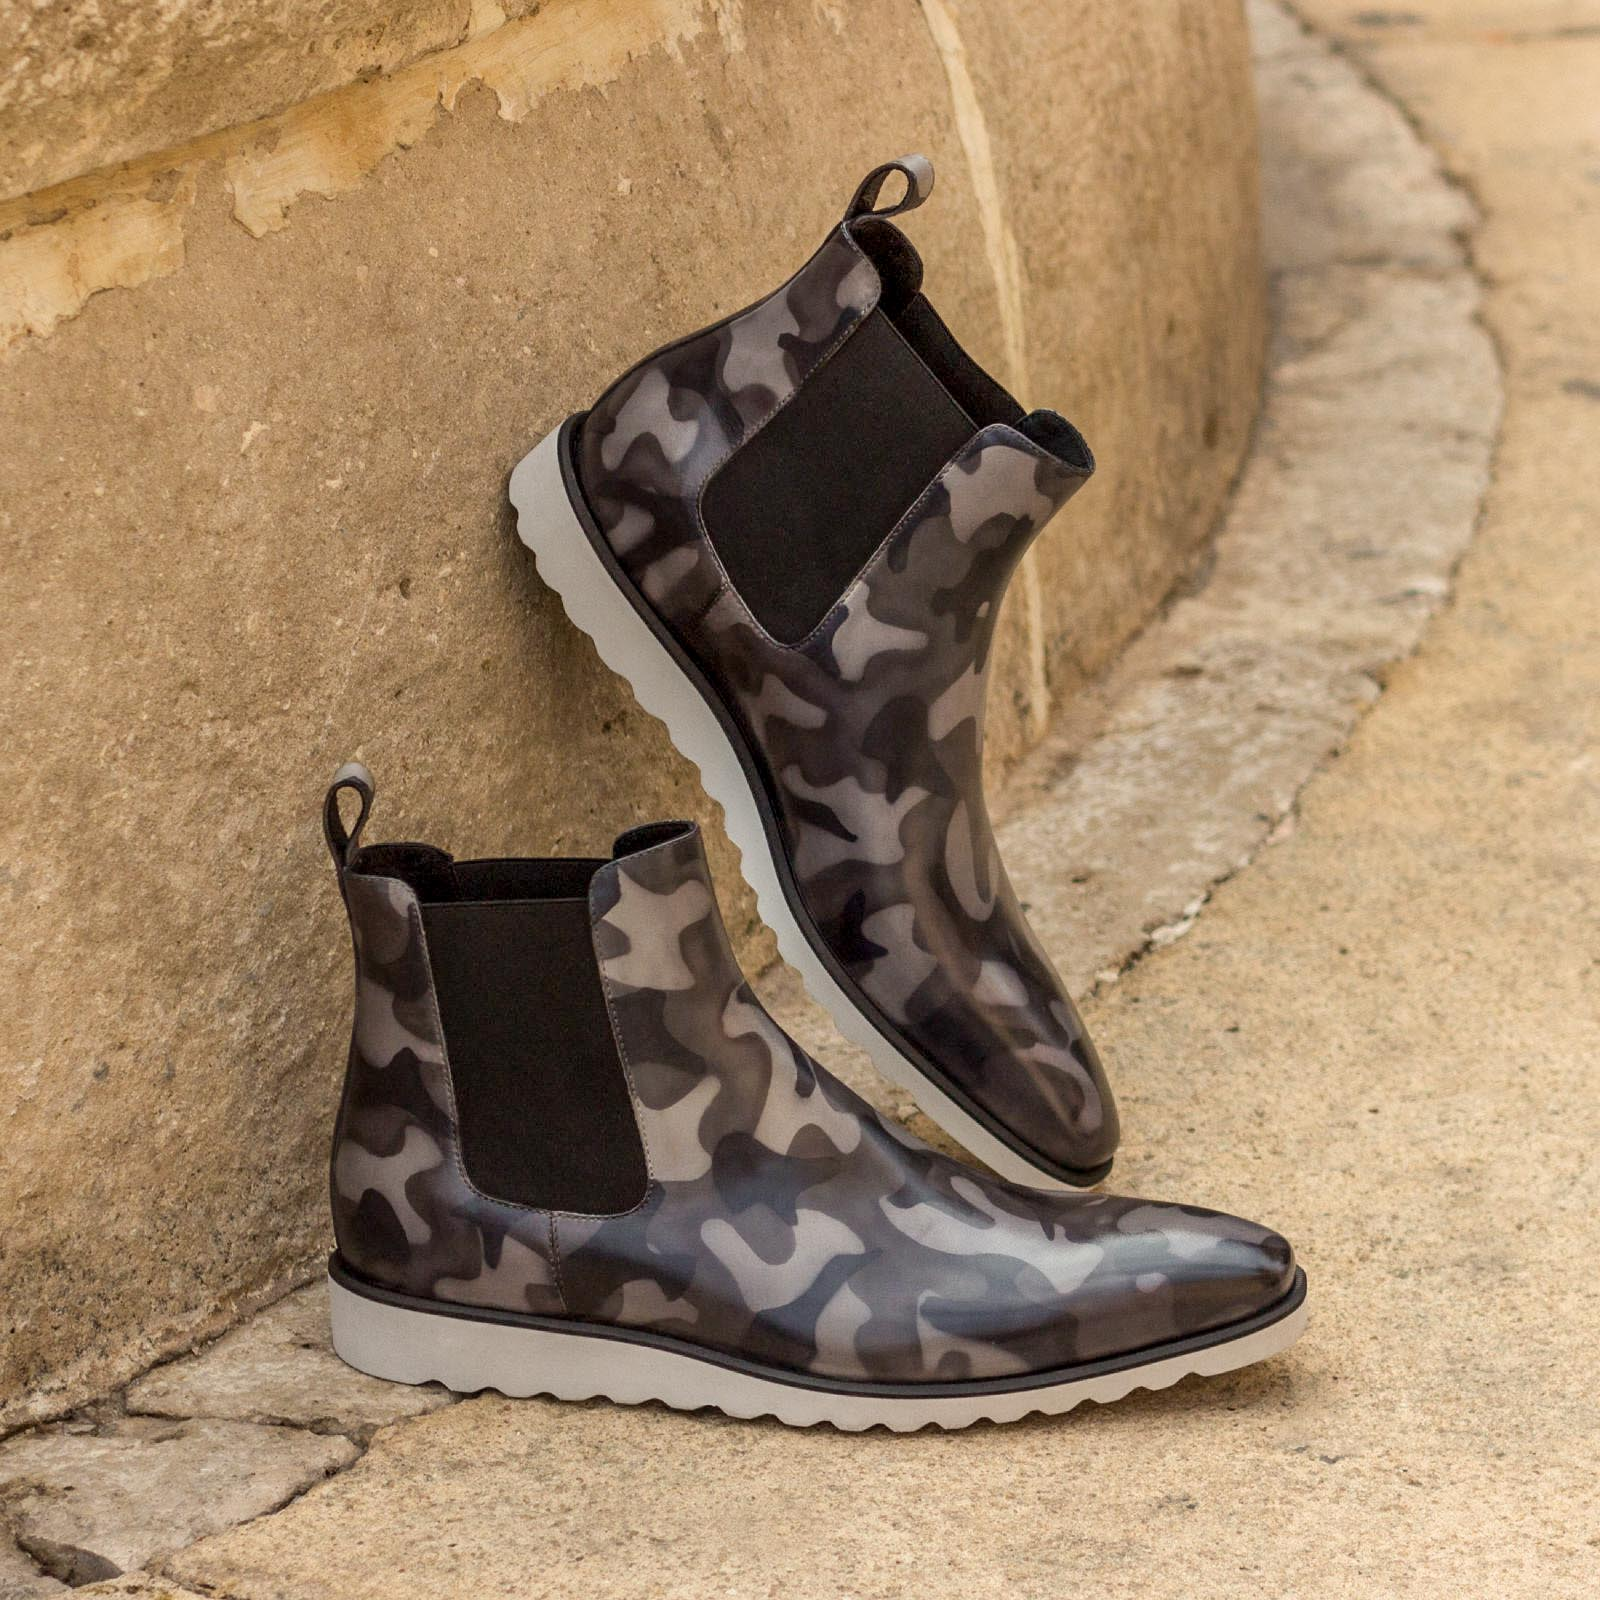 Chelsea boot grey camo patina : 360€